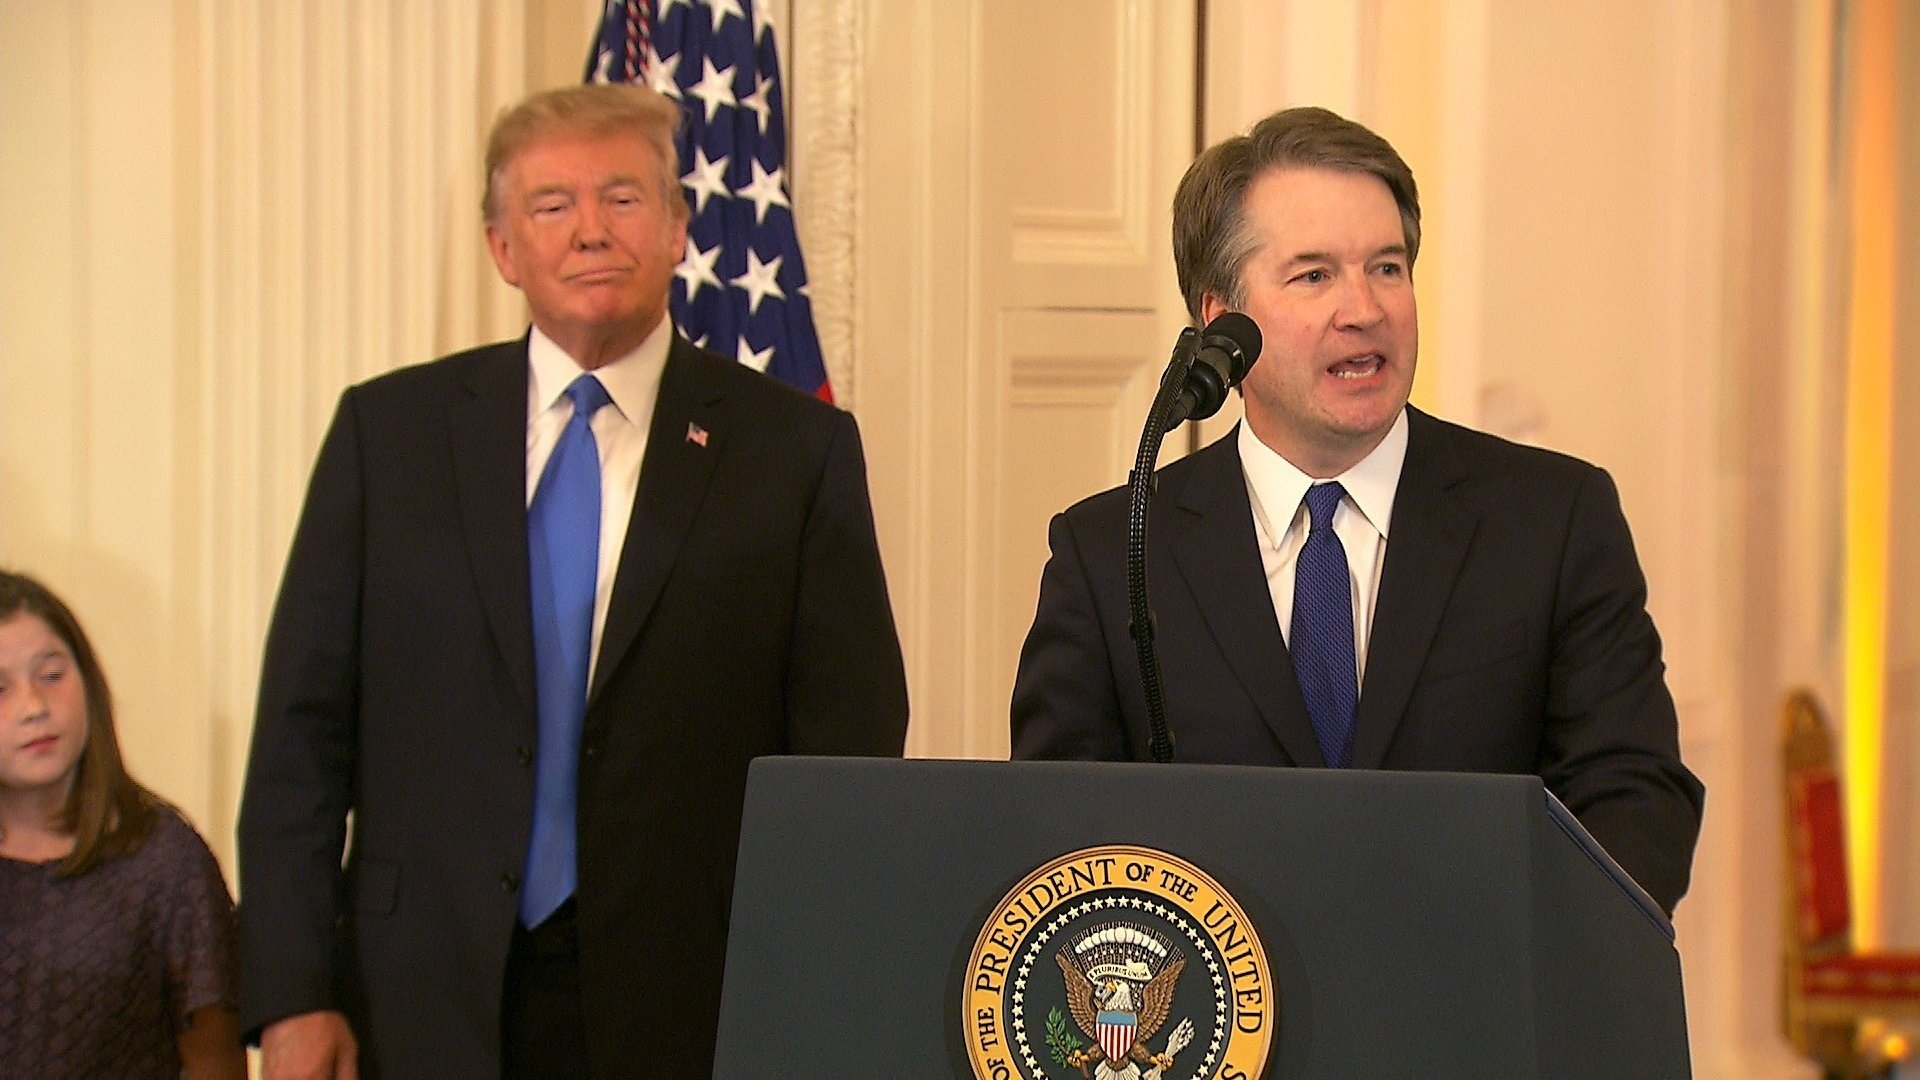 Since President Donald Trump nominated him Monday night, critics have been jousting over where exactly nominee Brett Kavanaugh would fit on the Supreme Court's ideological spectrum.